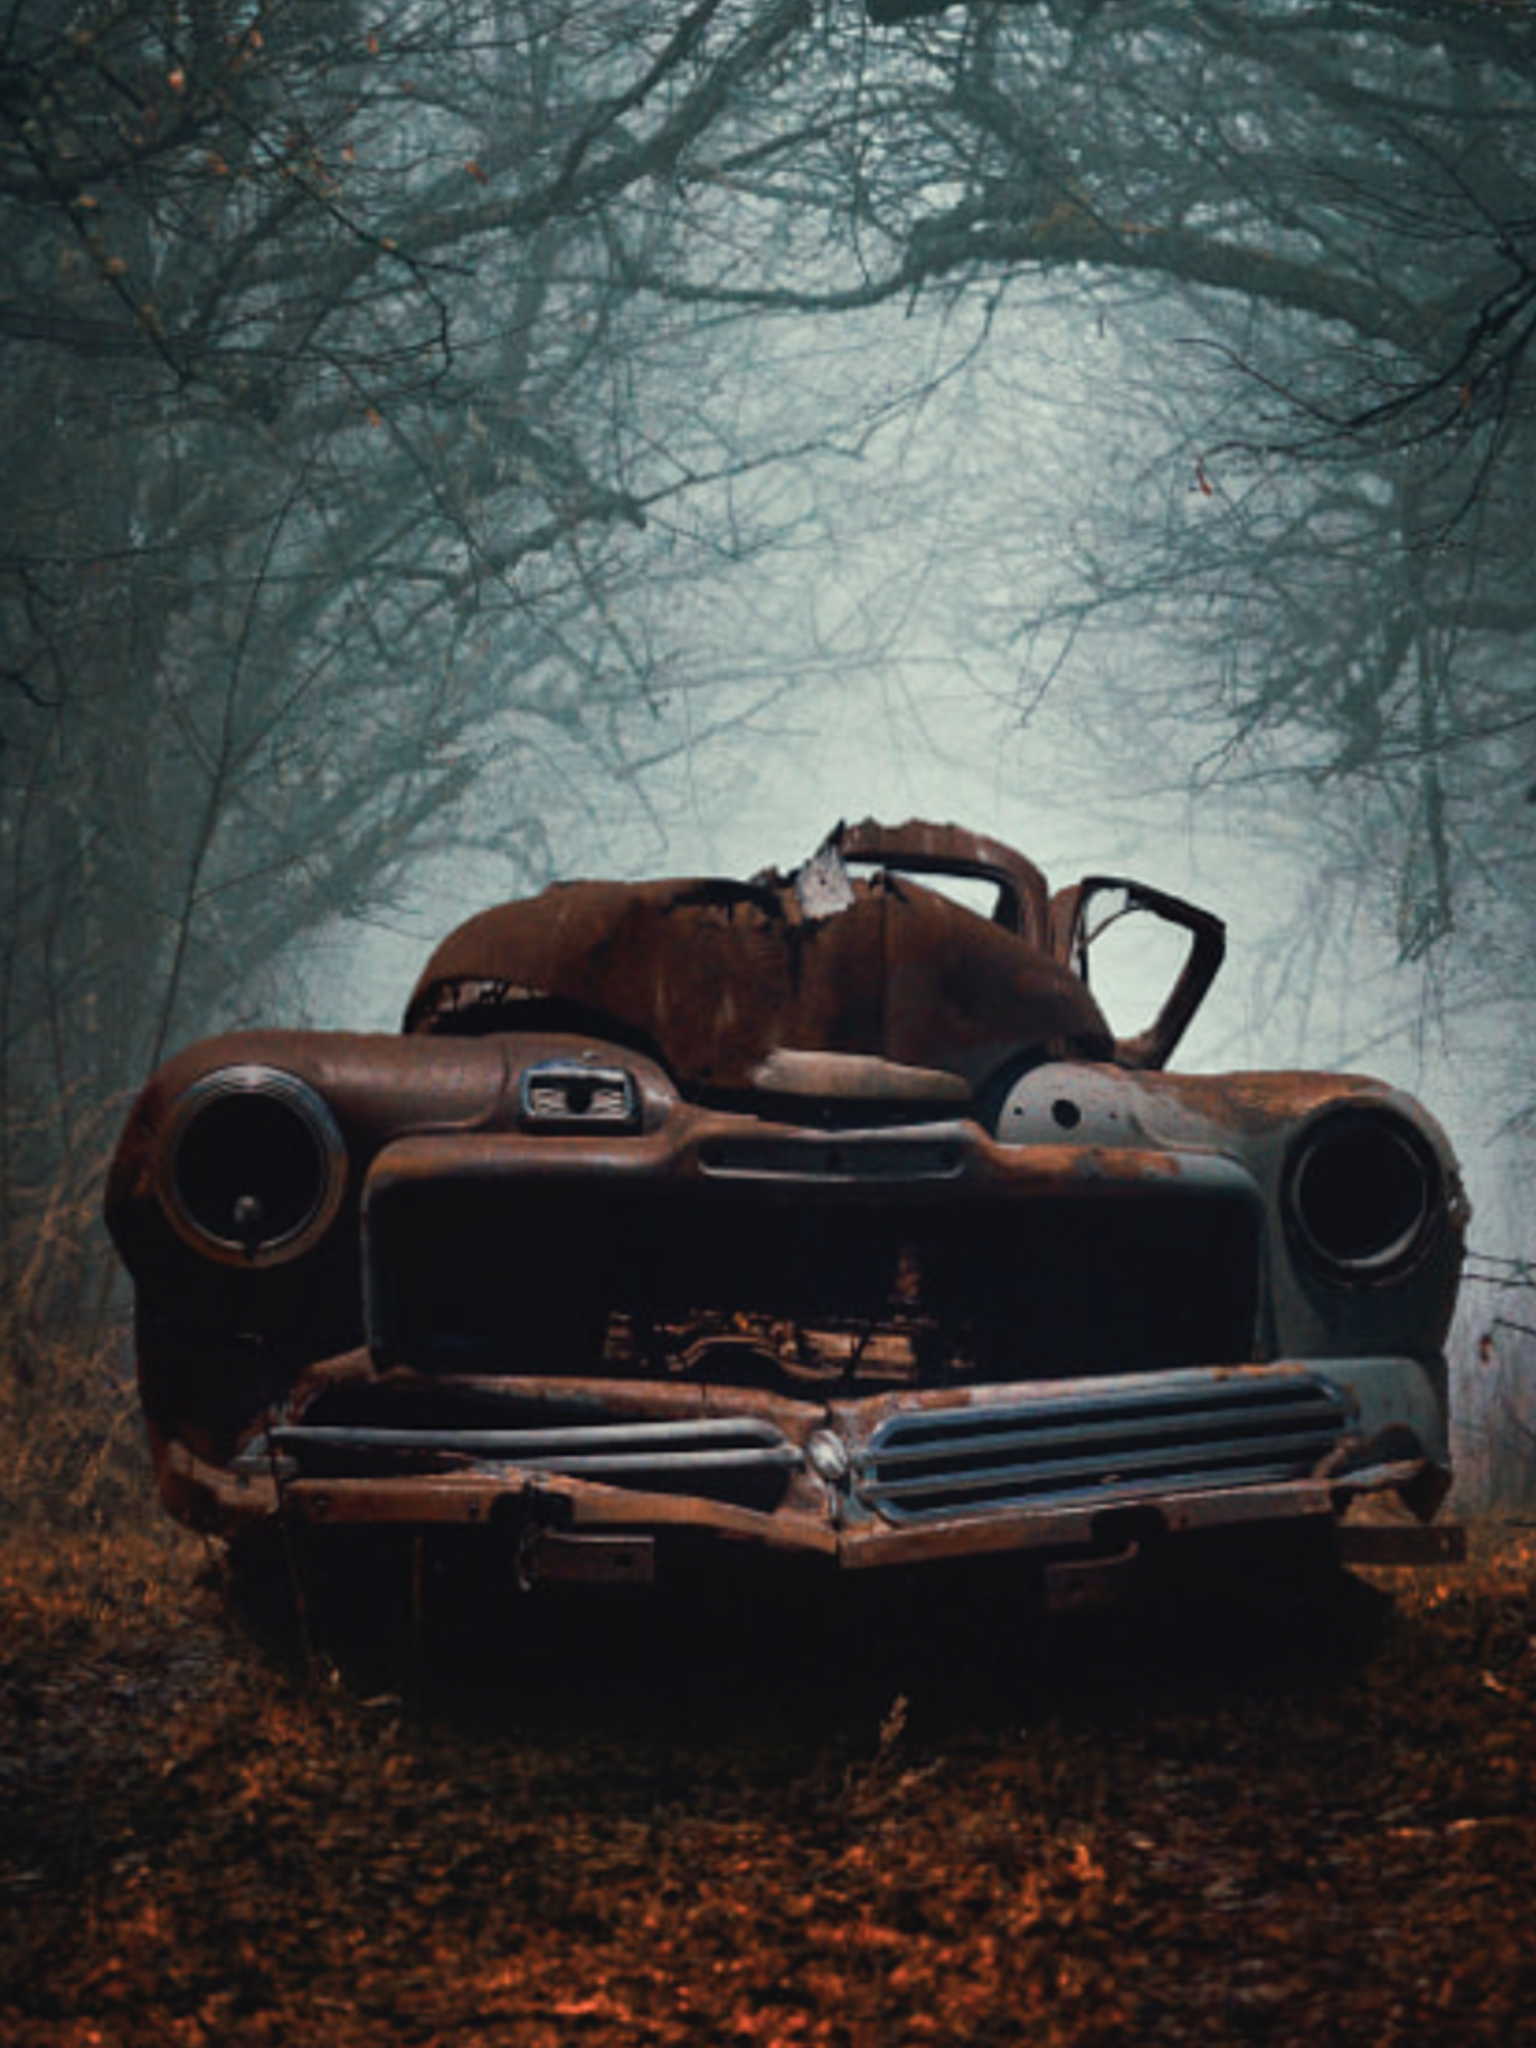 Rusty Car In The Woods Source Facebook Com Beautiful Vintage Cars